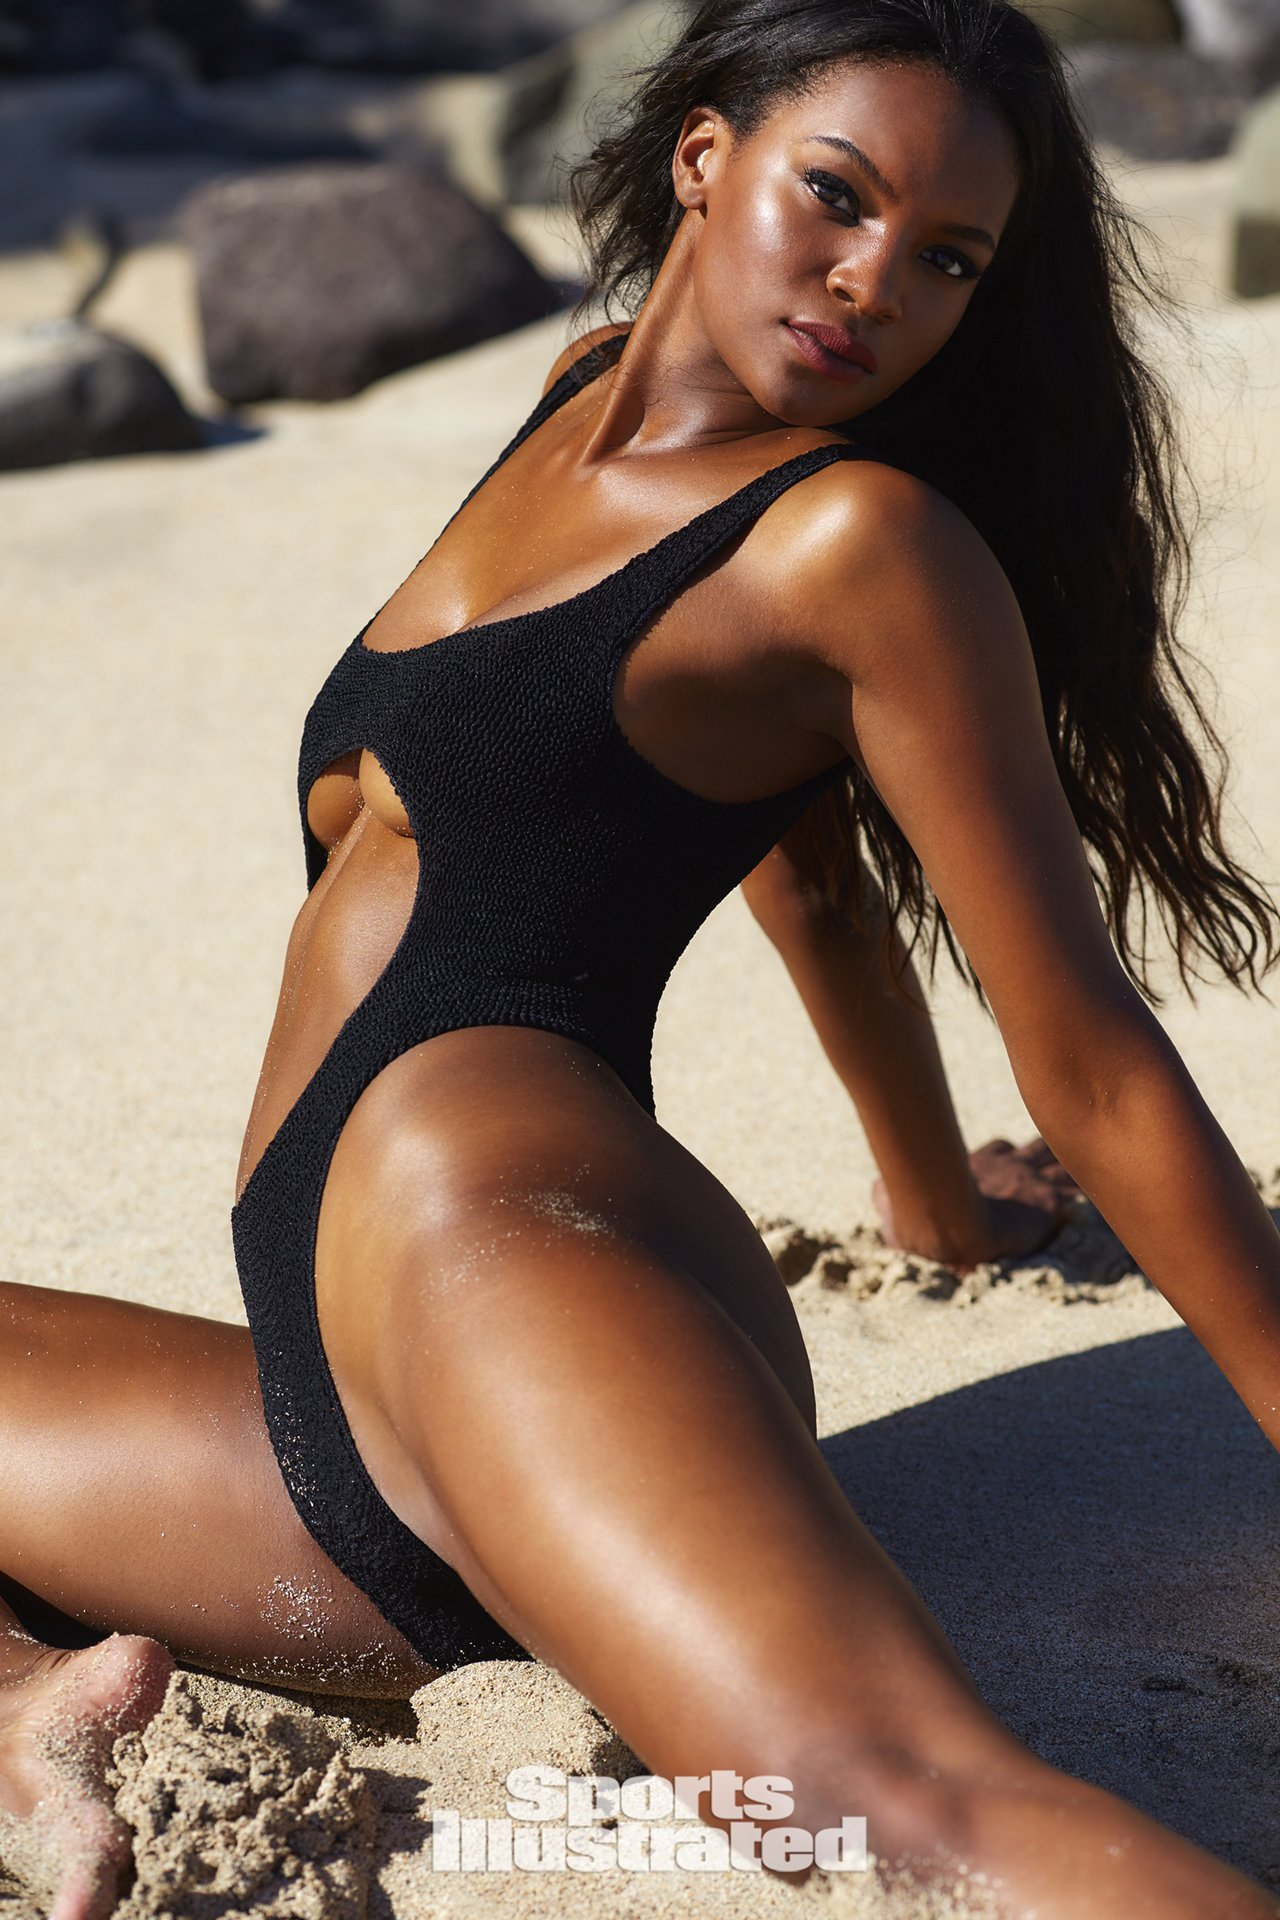 Sports Illustrated Swimsuit Issue 2018 (26).jpg